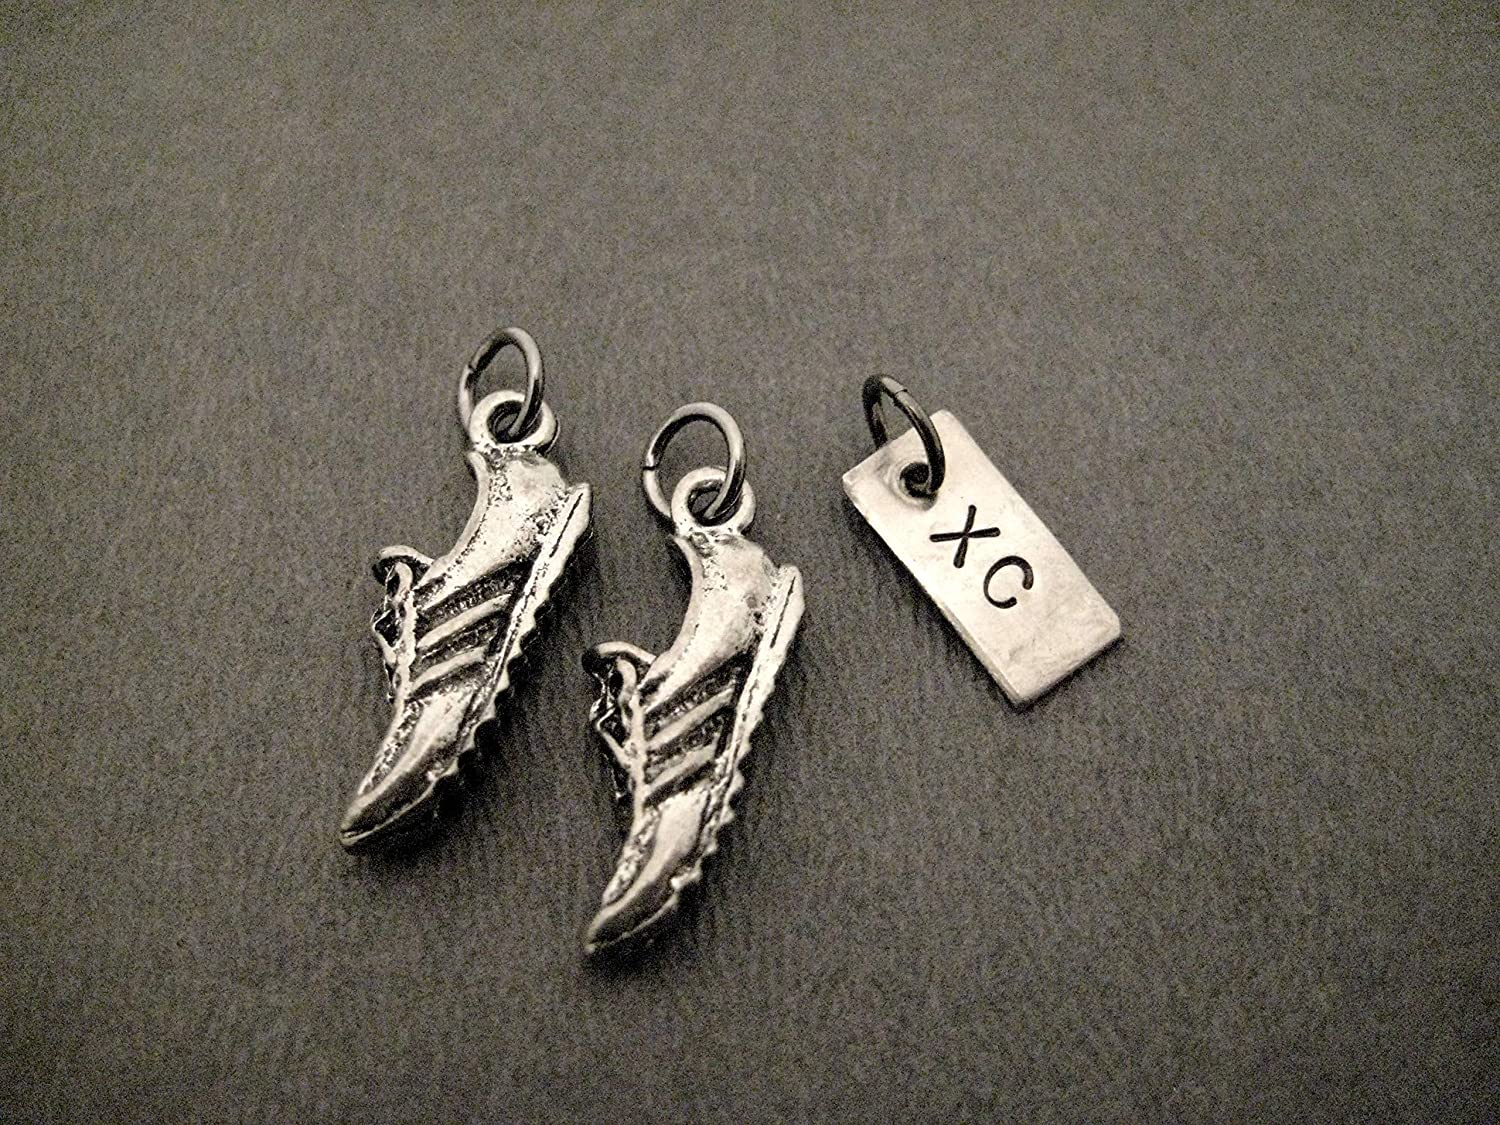 Running SHOE XC Charm Set - Pair of Running Shoe Charms - 2 Pewter Running Shoe Charms and 1 XC Charm in Organza Bag - TWO (2) Pewter Running Shoe Charms plus ONE (1) XC Charm